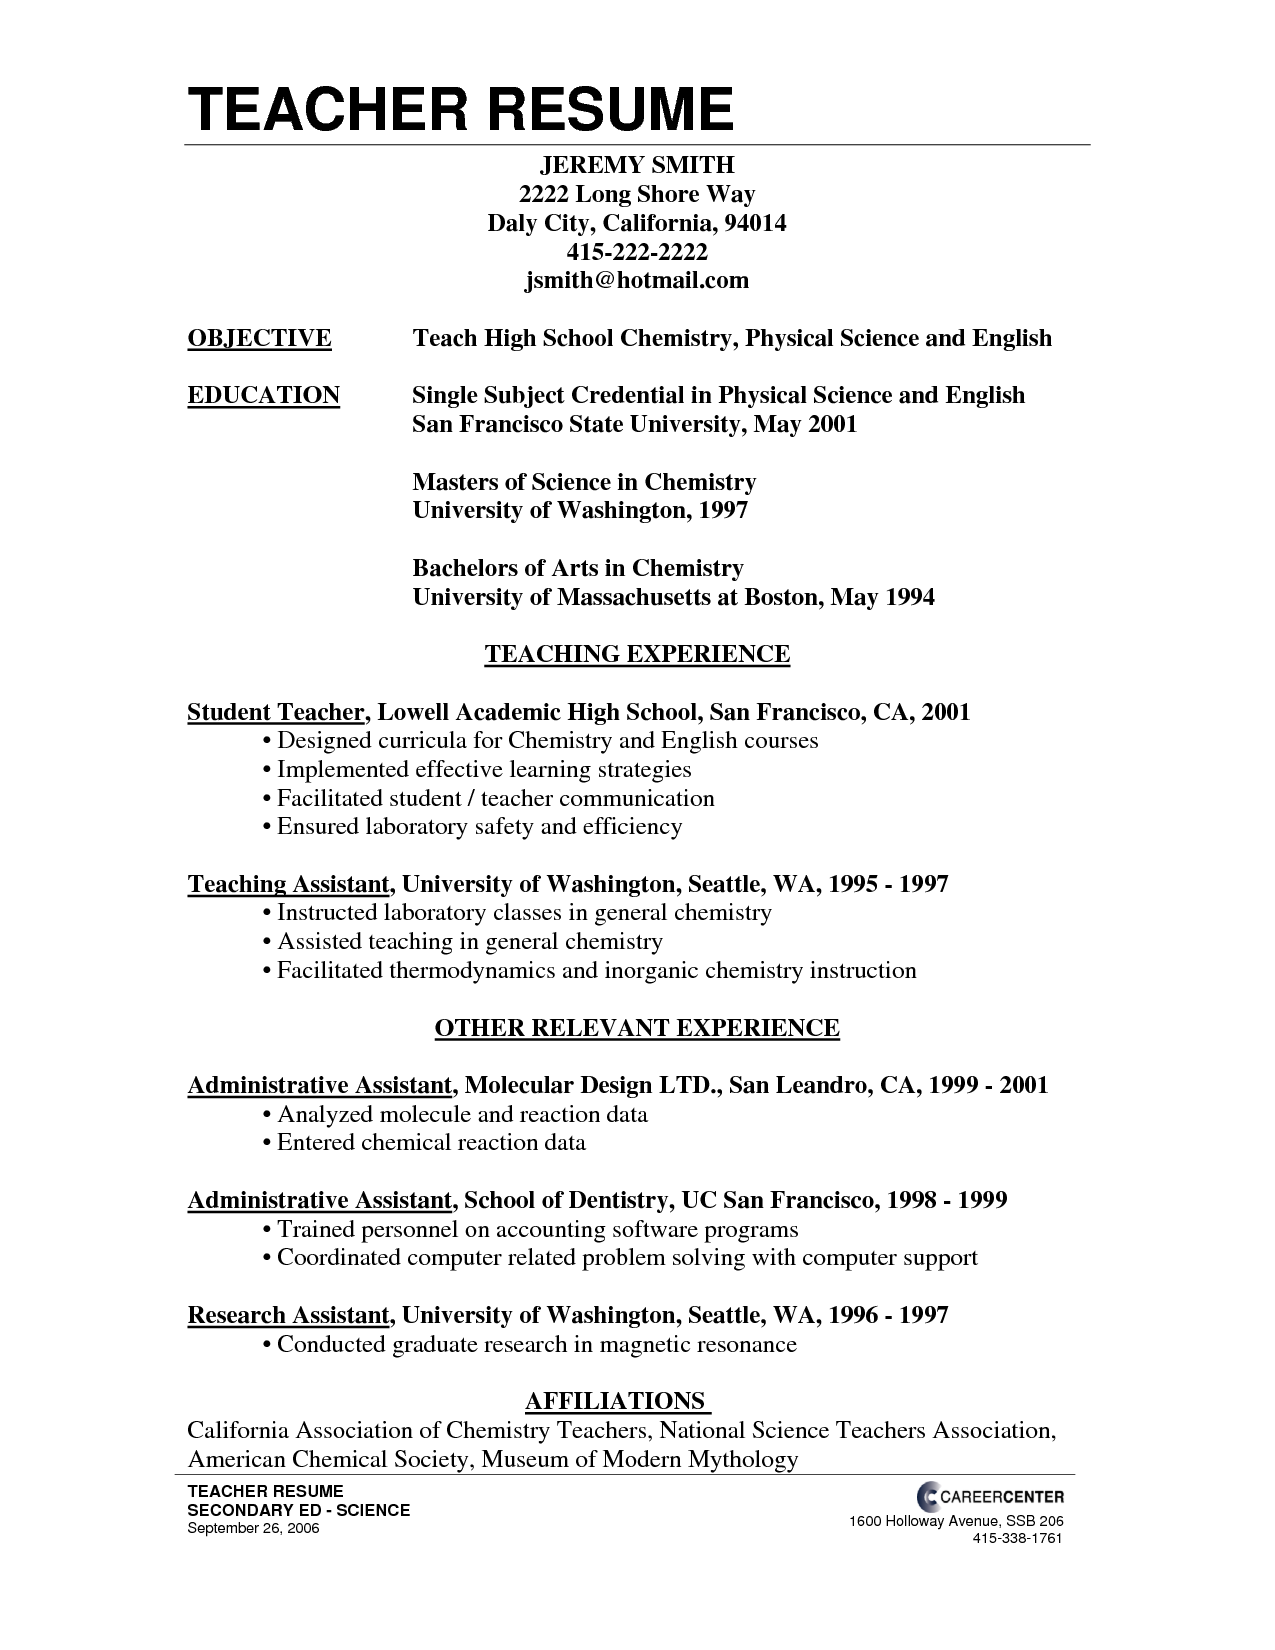 resume objectives for teachers - sarp.potanist.co